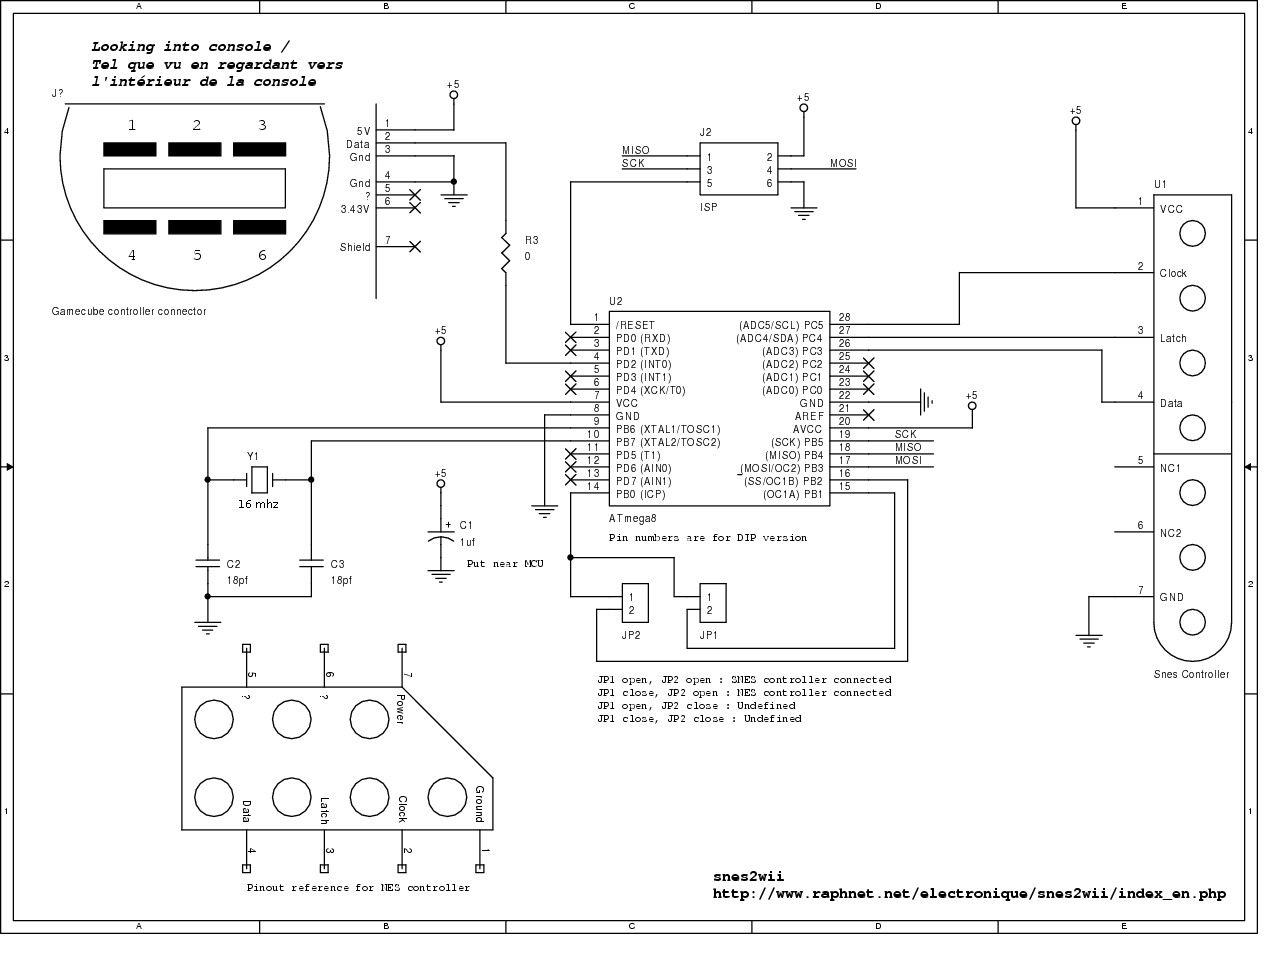 gamecube controller wiring diagram   34 wiring diagram